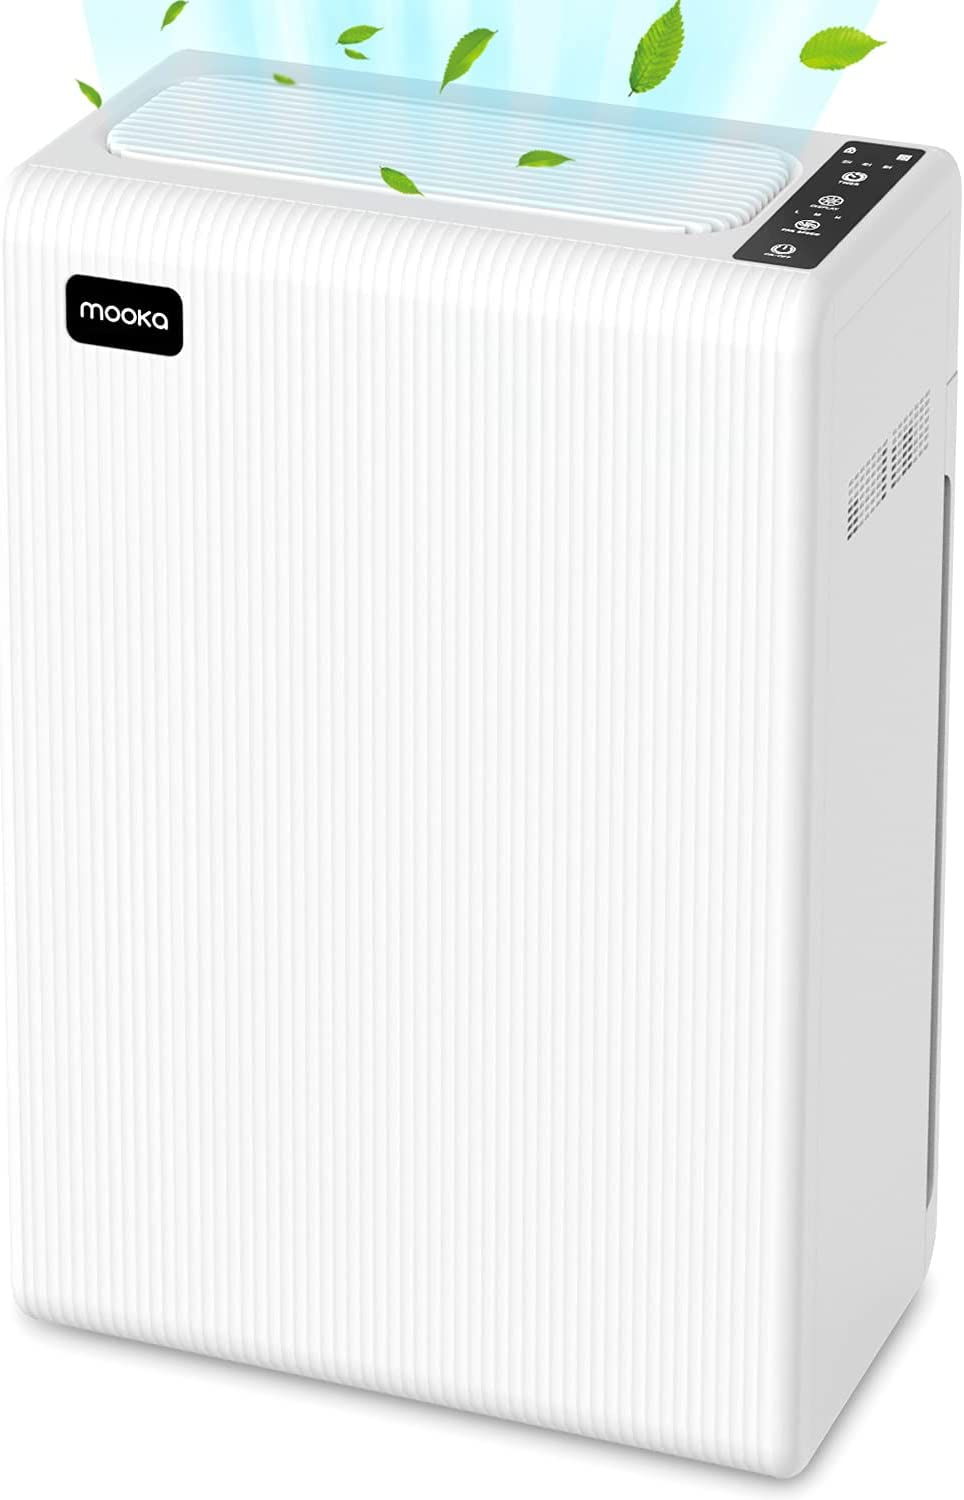 MOOKA Air Purifier for Home Large Room up to 969ft², H13 True HEPA Filter Cleaner for Allergies and Pets, Smokers, Pollen, Dust, Quiet Odor Eliminators for Bedroom, E-300L (White)